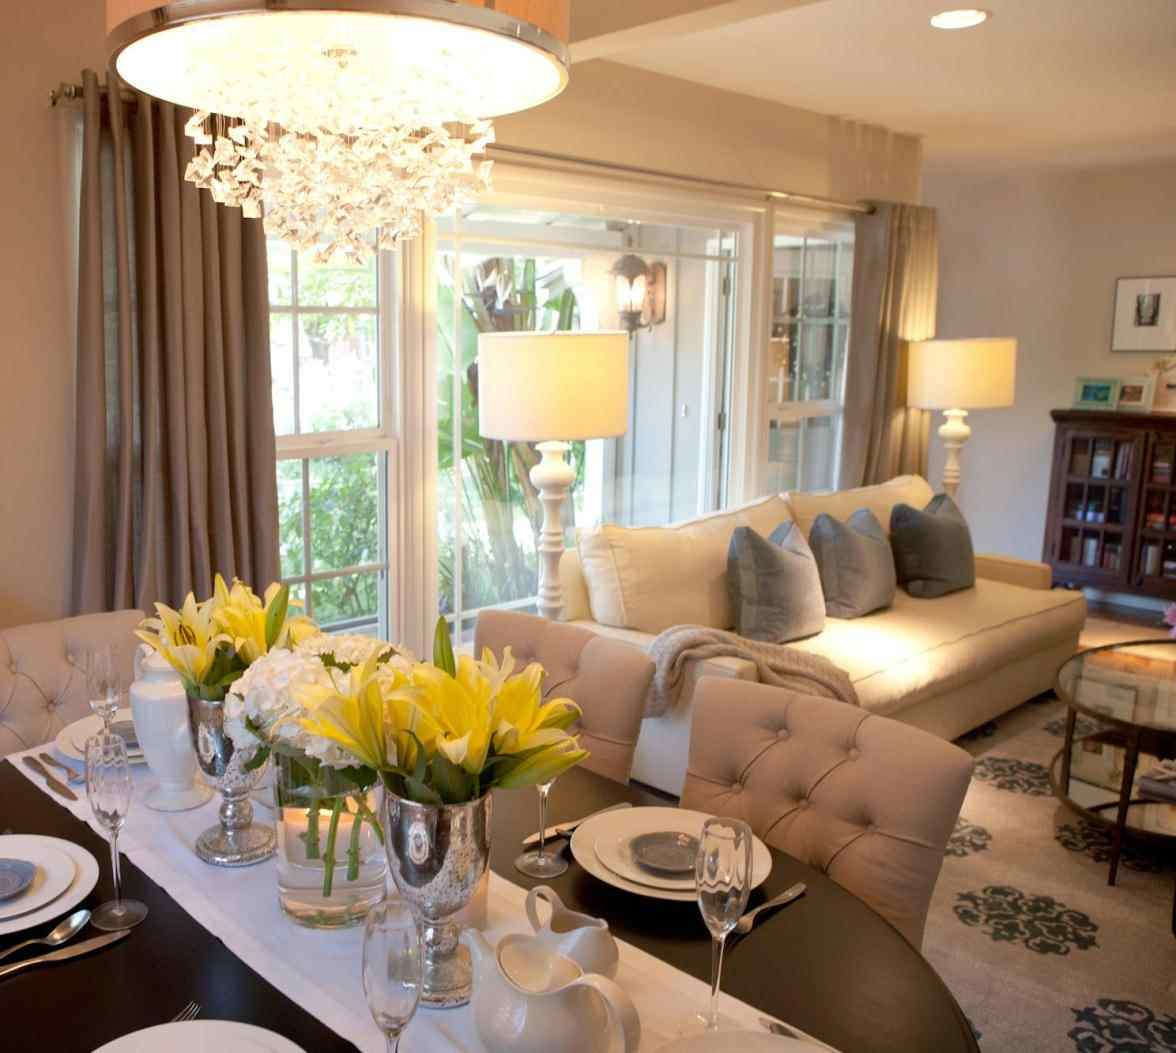 Small Living Room Dining Combo Layout Ideas House Plans 149898